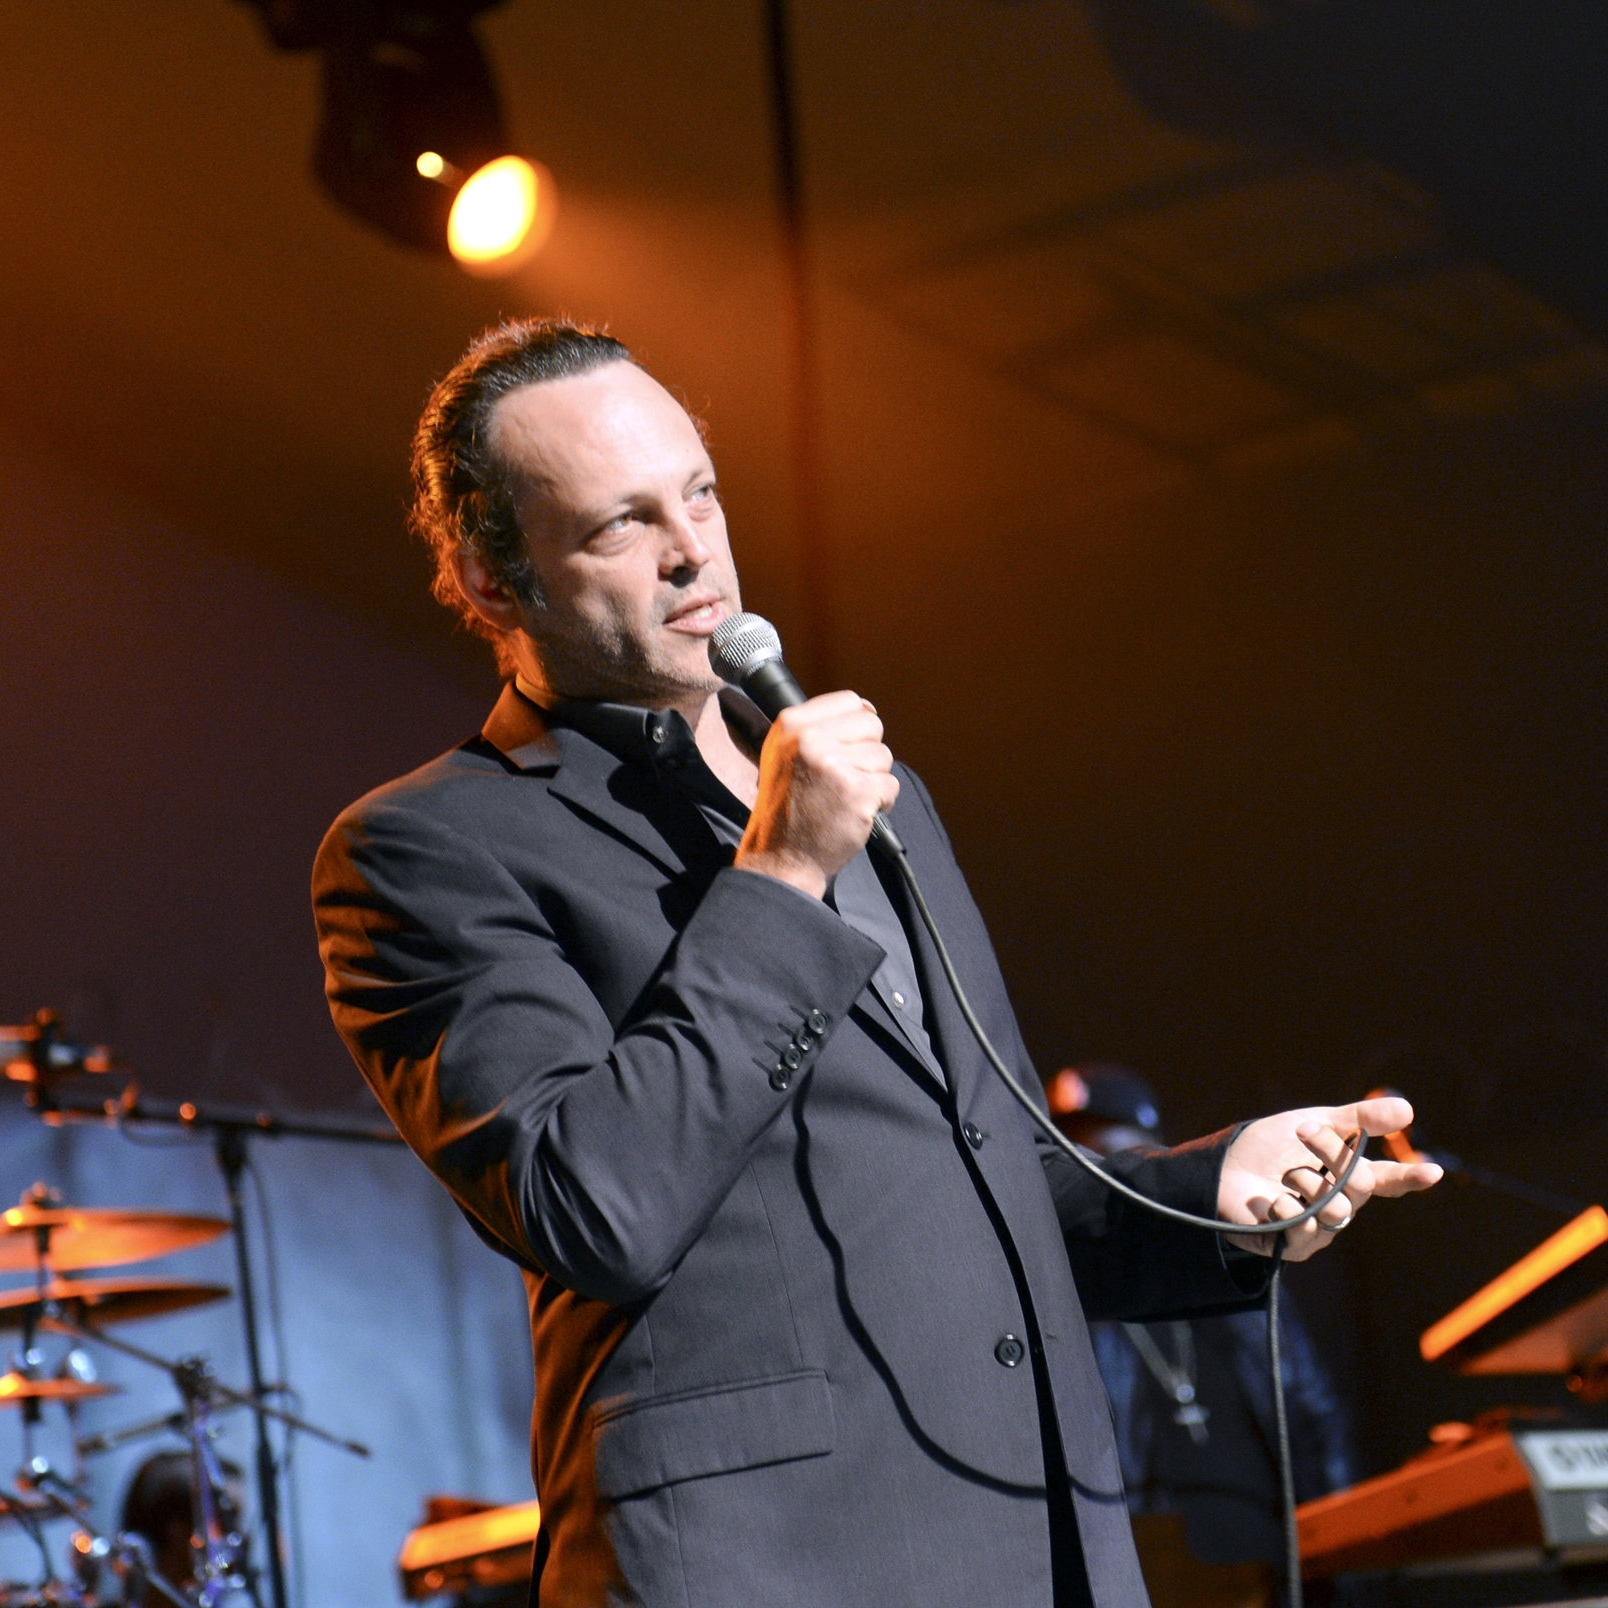 Vince Vaughn on stage at private event